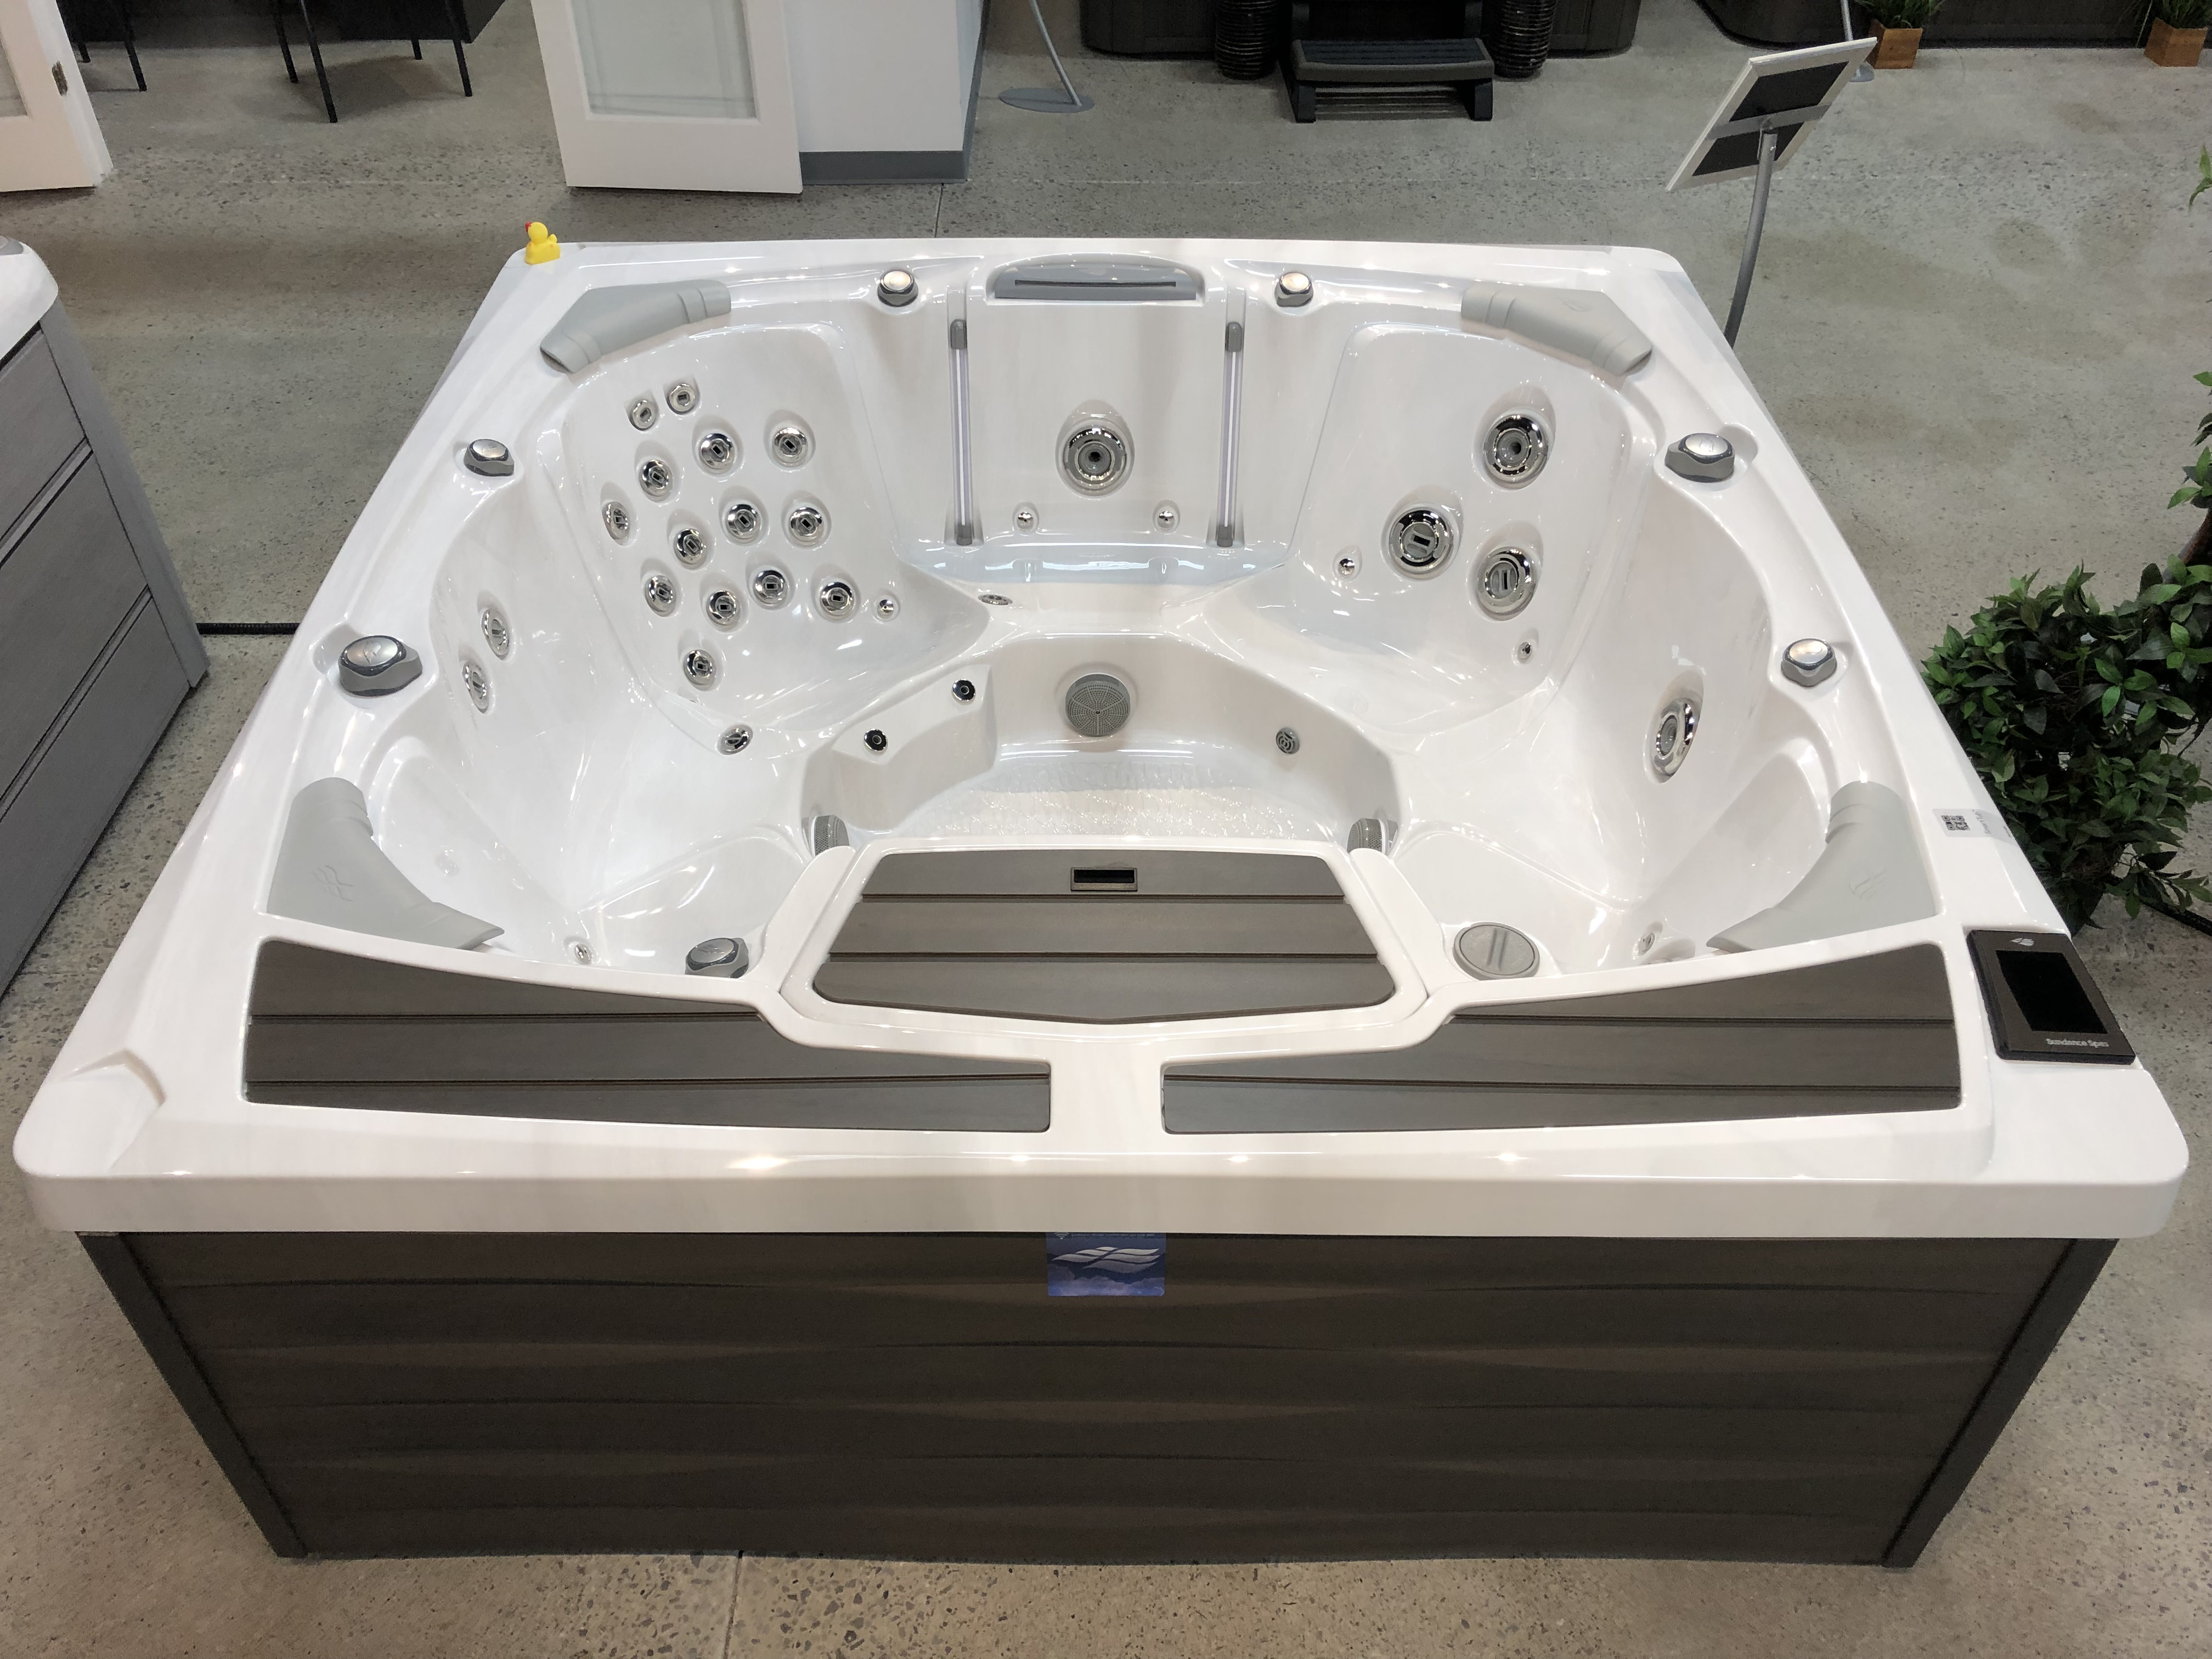 Sundance Spas 980 Series Odessa 7 person hot tub spa jacuzzi whirlpool Hamilton Ontario